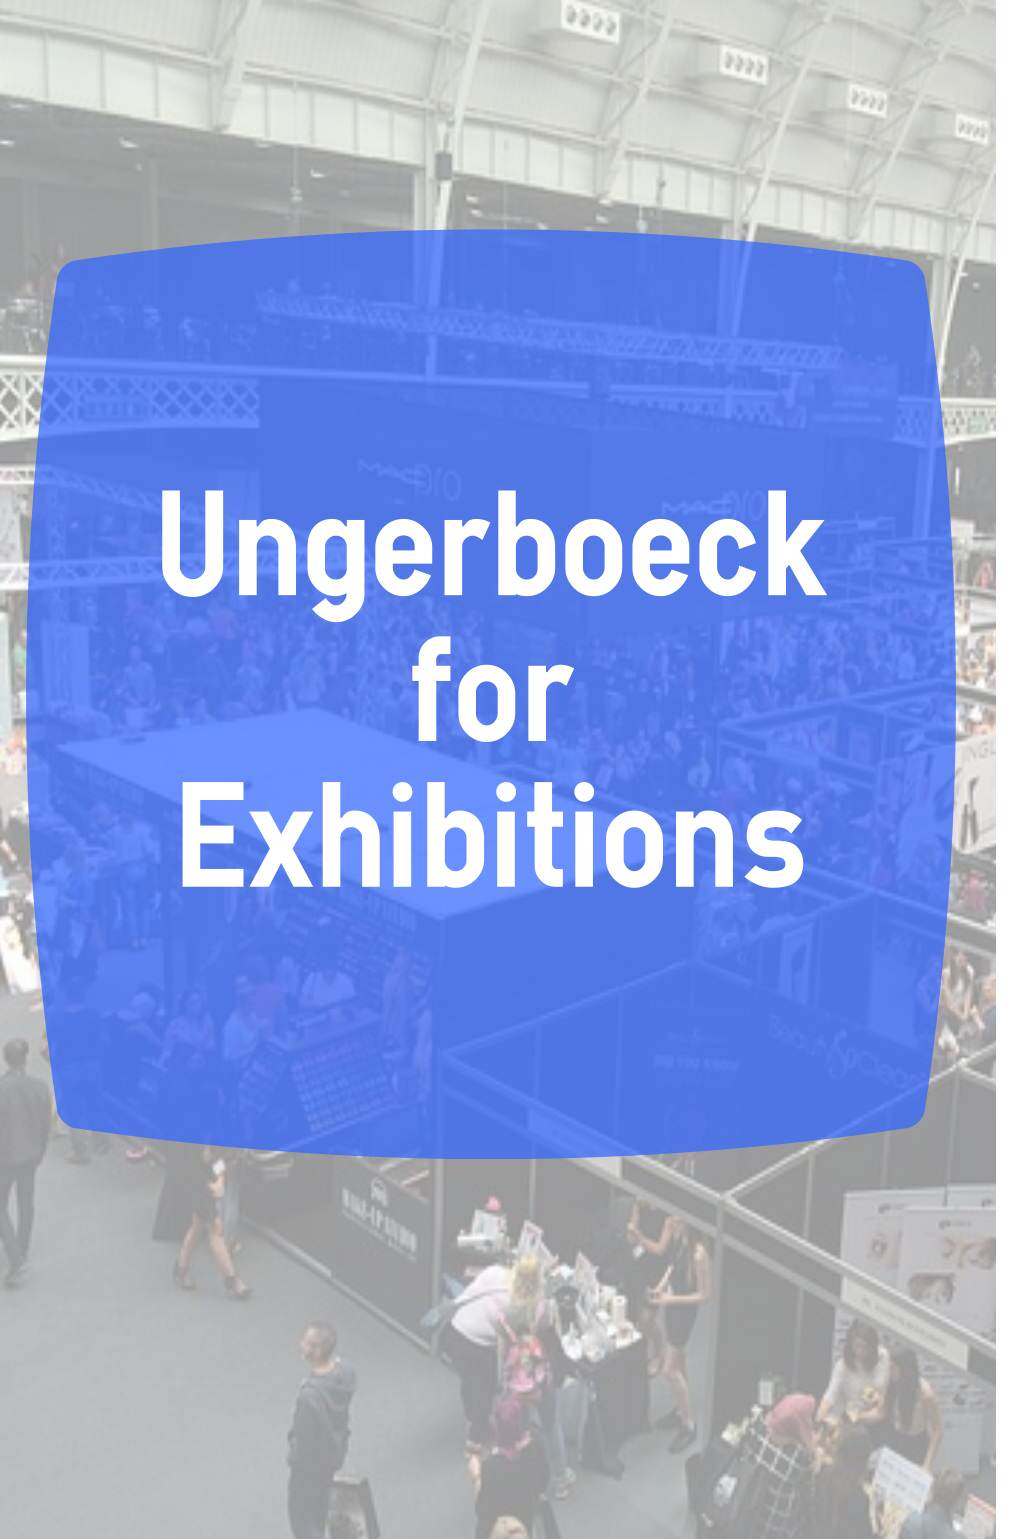 exhibition event software